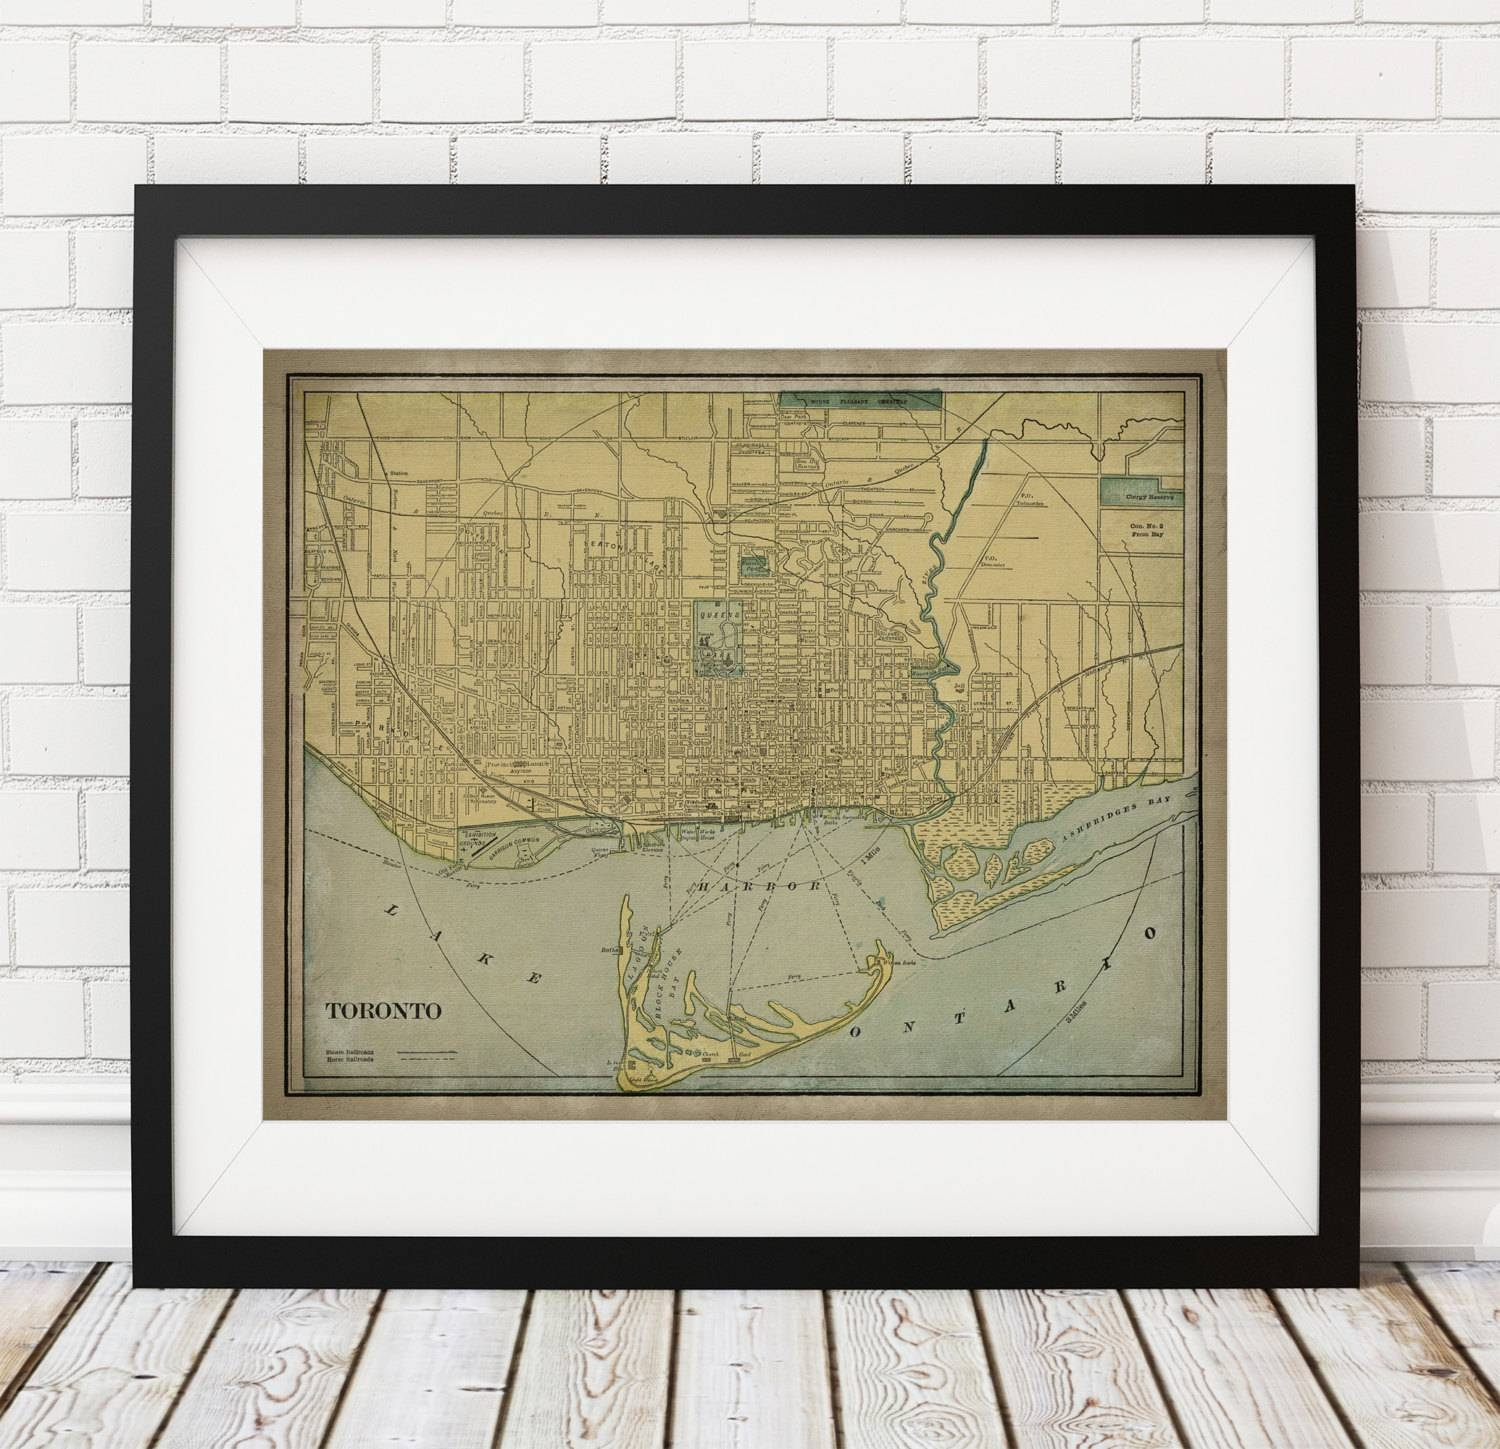 Toronto Map Print, Vintage Map Art, Antique Map, Canadian Wall Art In Most Recent Toronto Map Wall Art (View 3 of 20)